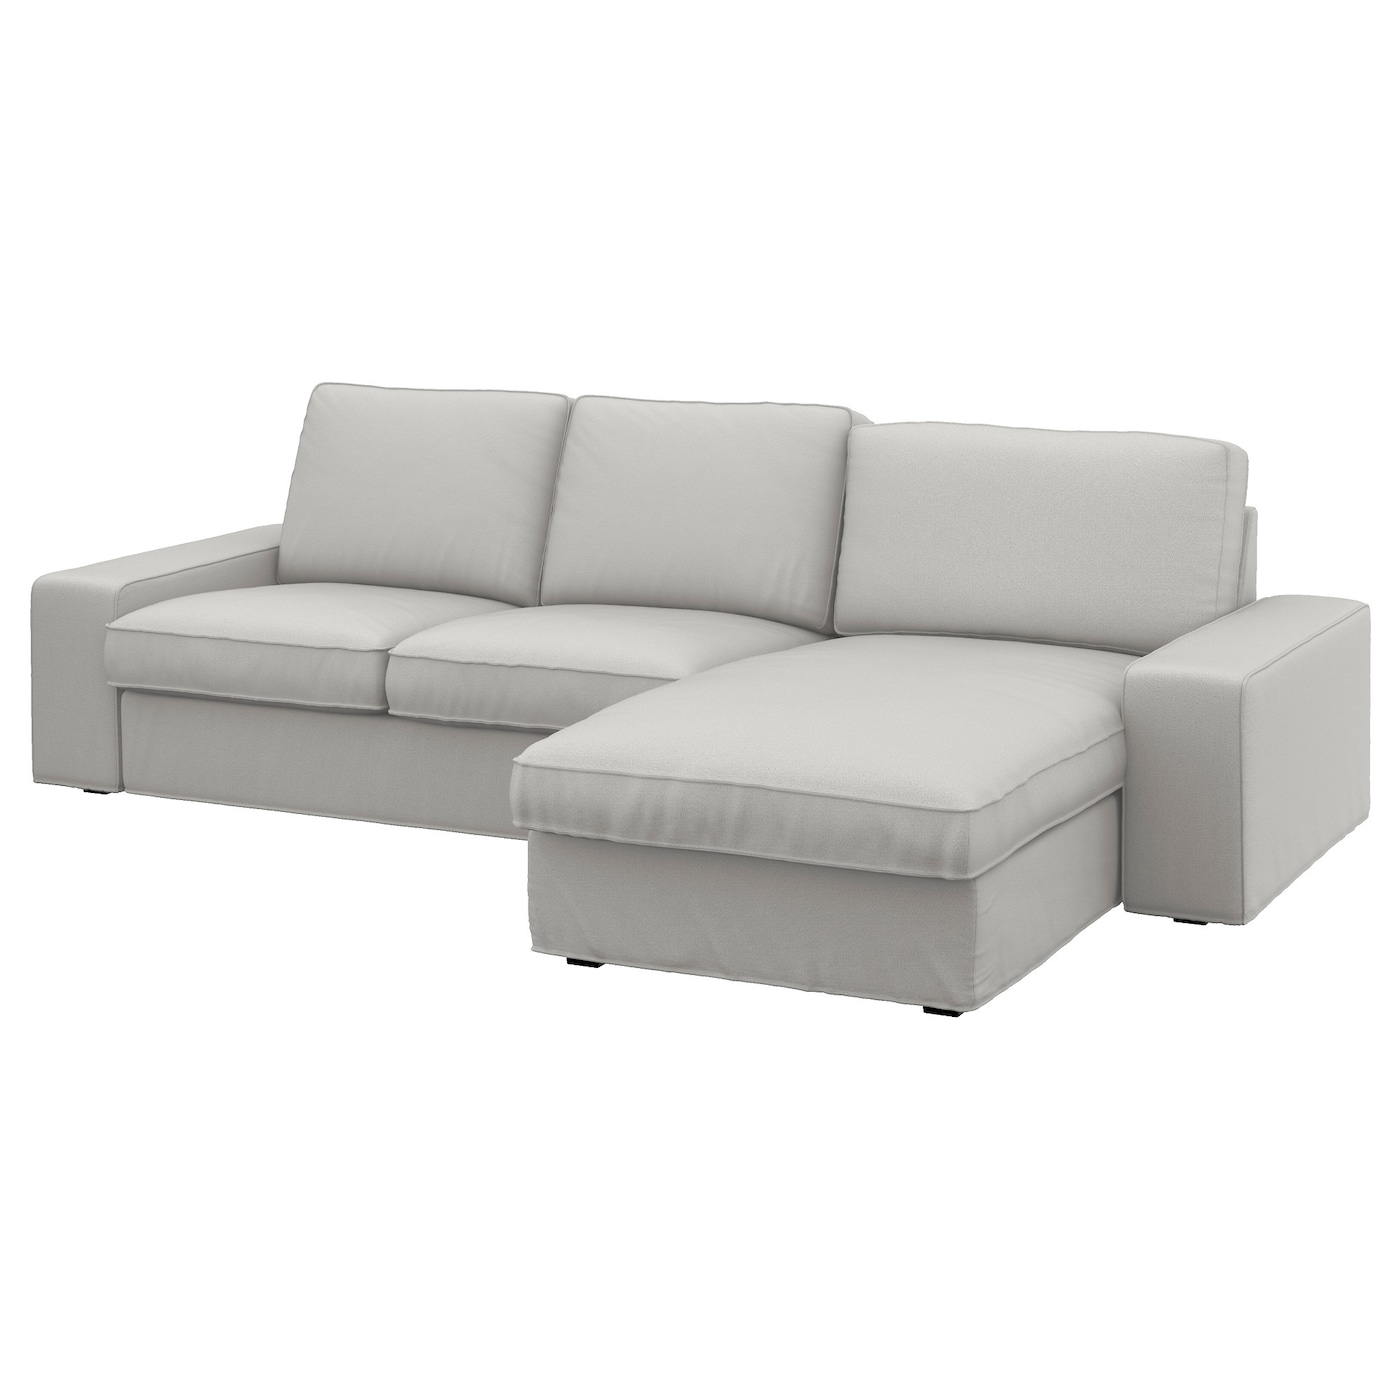 Kivik Two Seat Sofa And Chaise Longue Ramna Light Grey Ikea